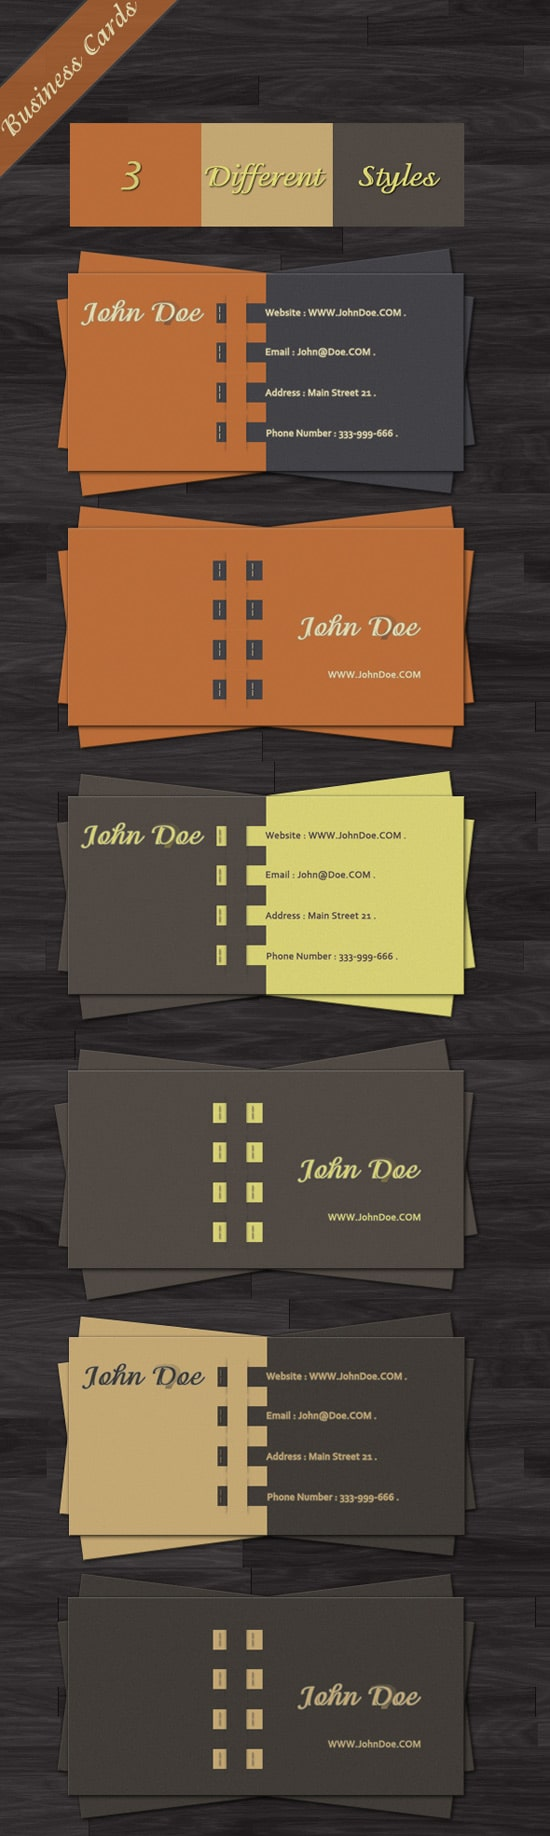 100 free business card templates designrfix business is business free psd vector business card wajeb Images